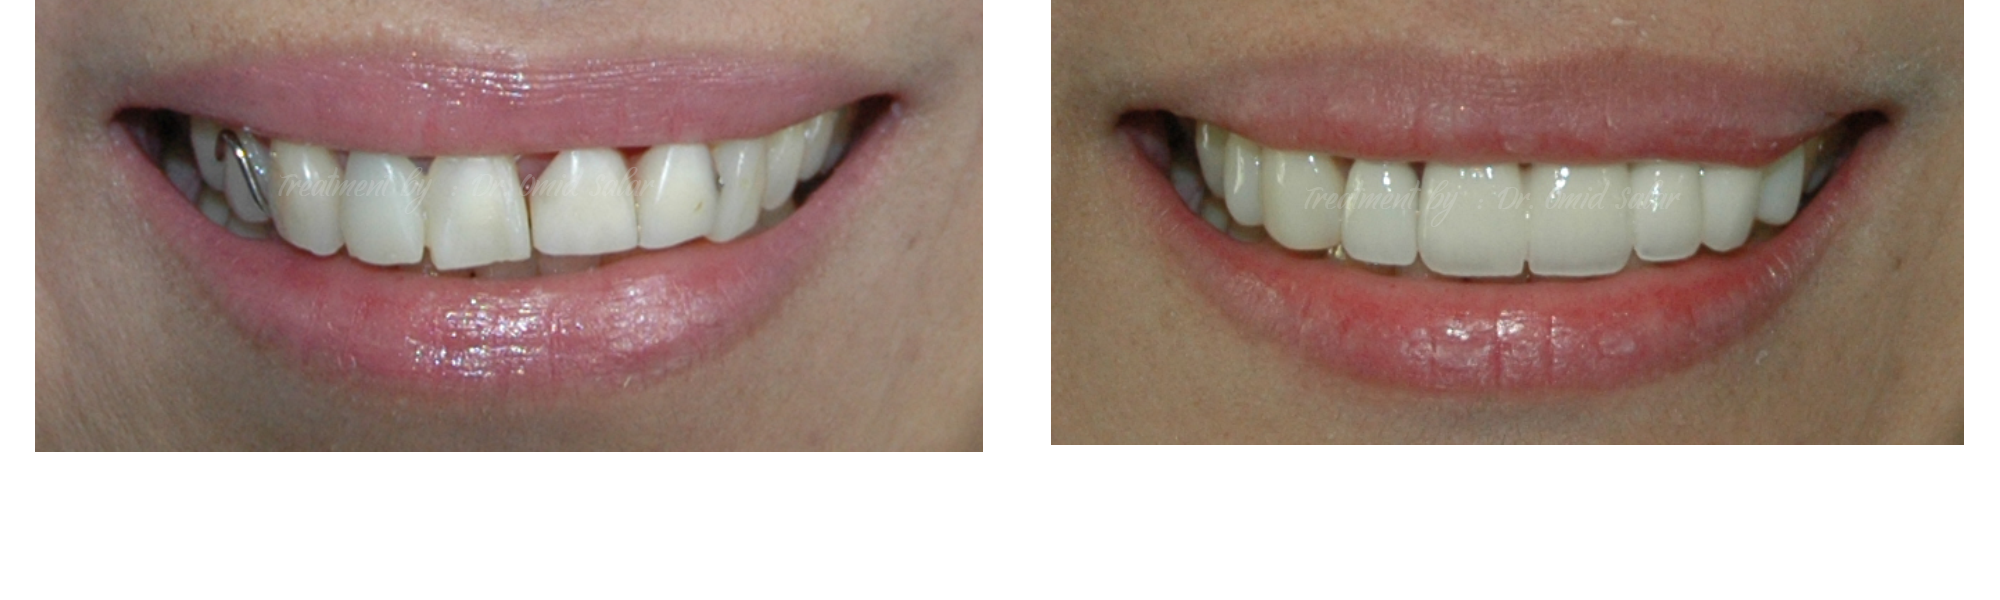 Discolored teeth plate before after photos - Dental Bridge - Veneers